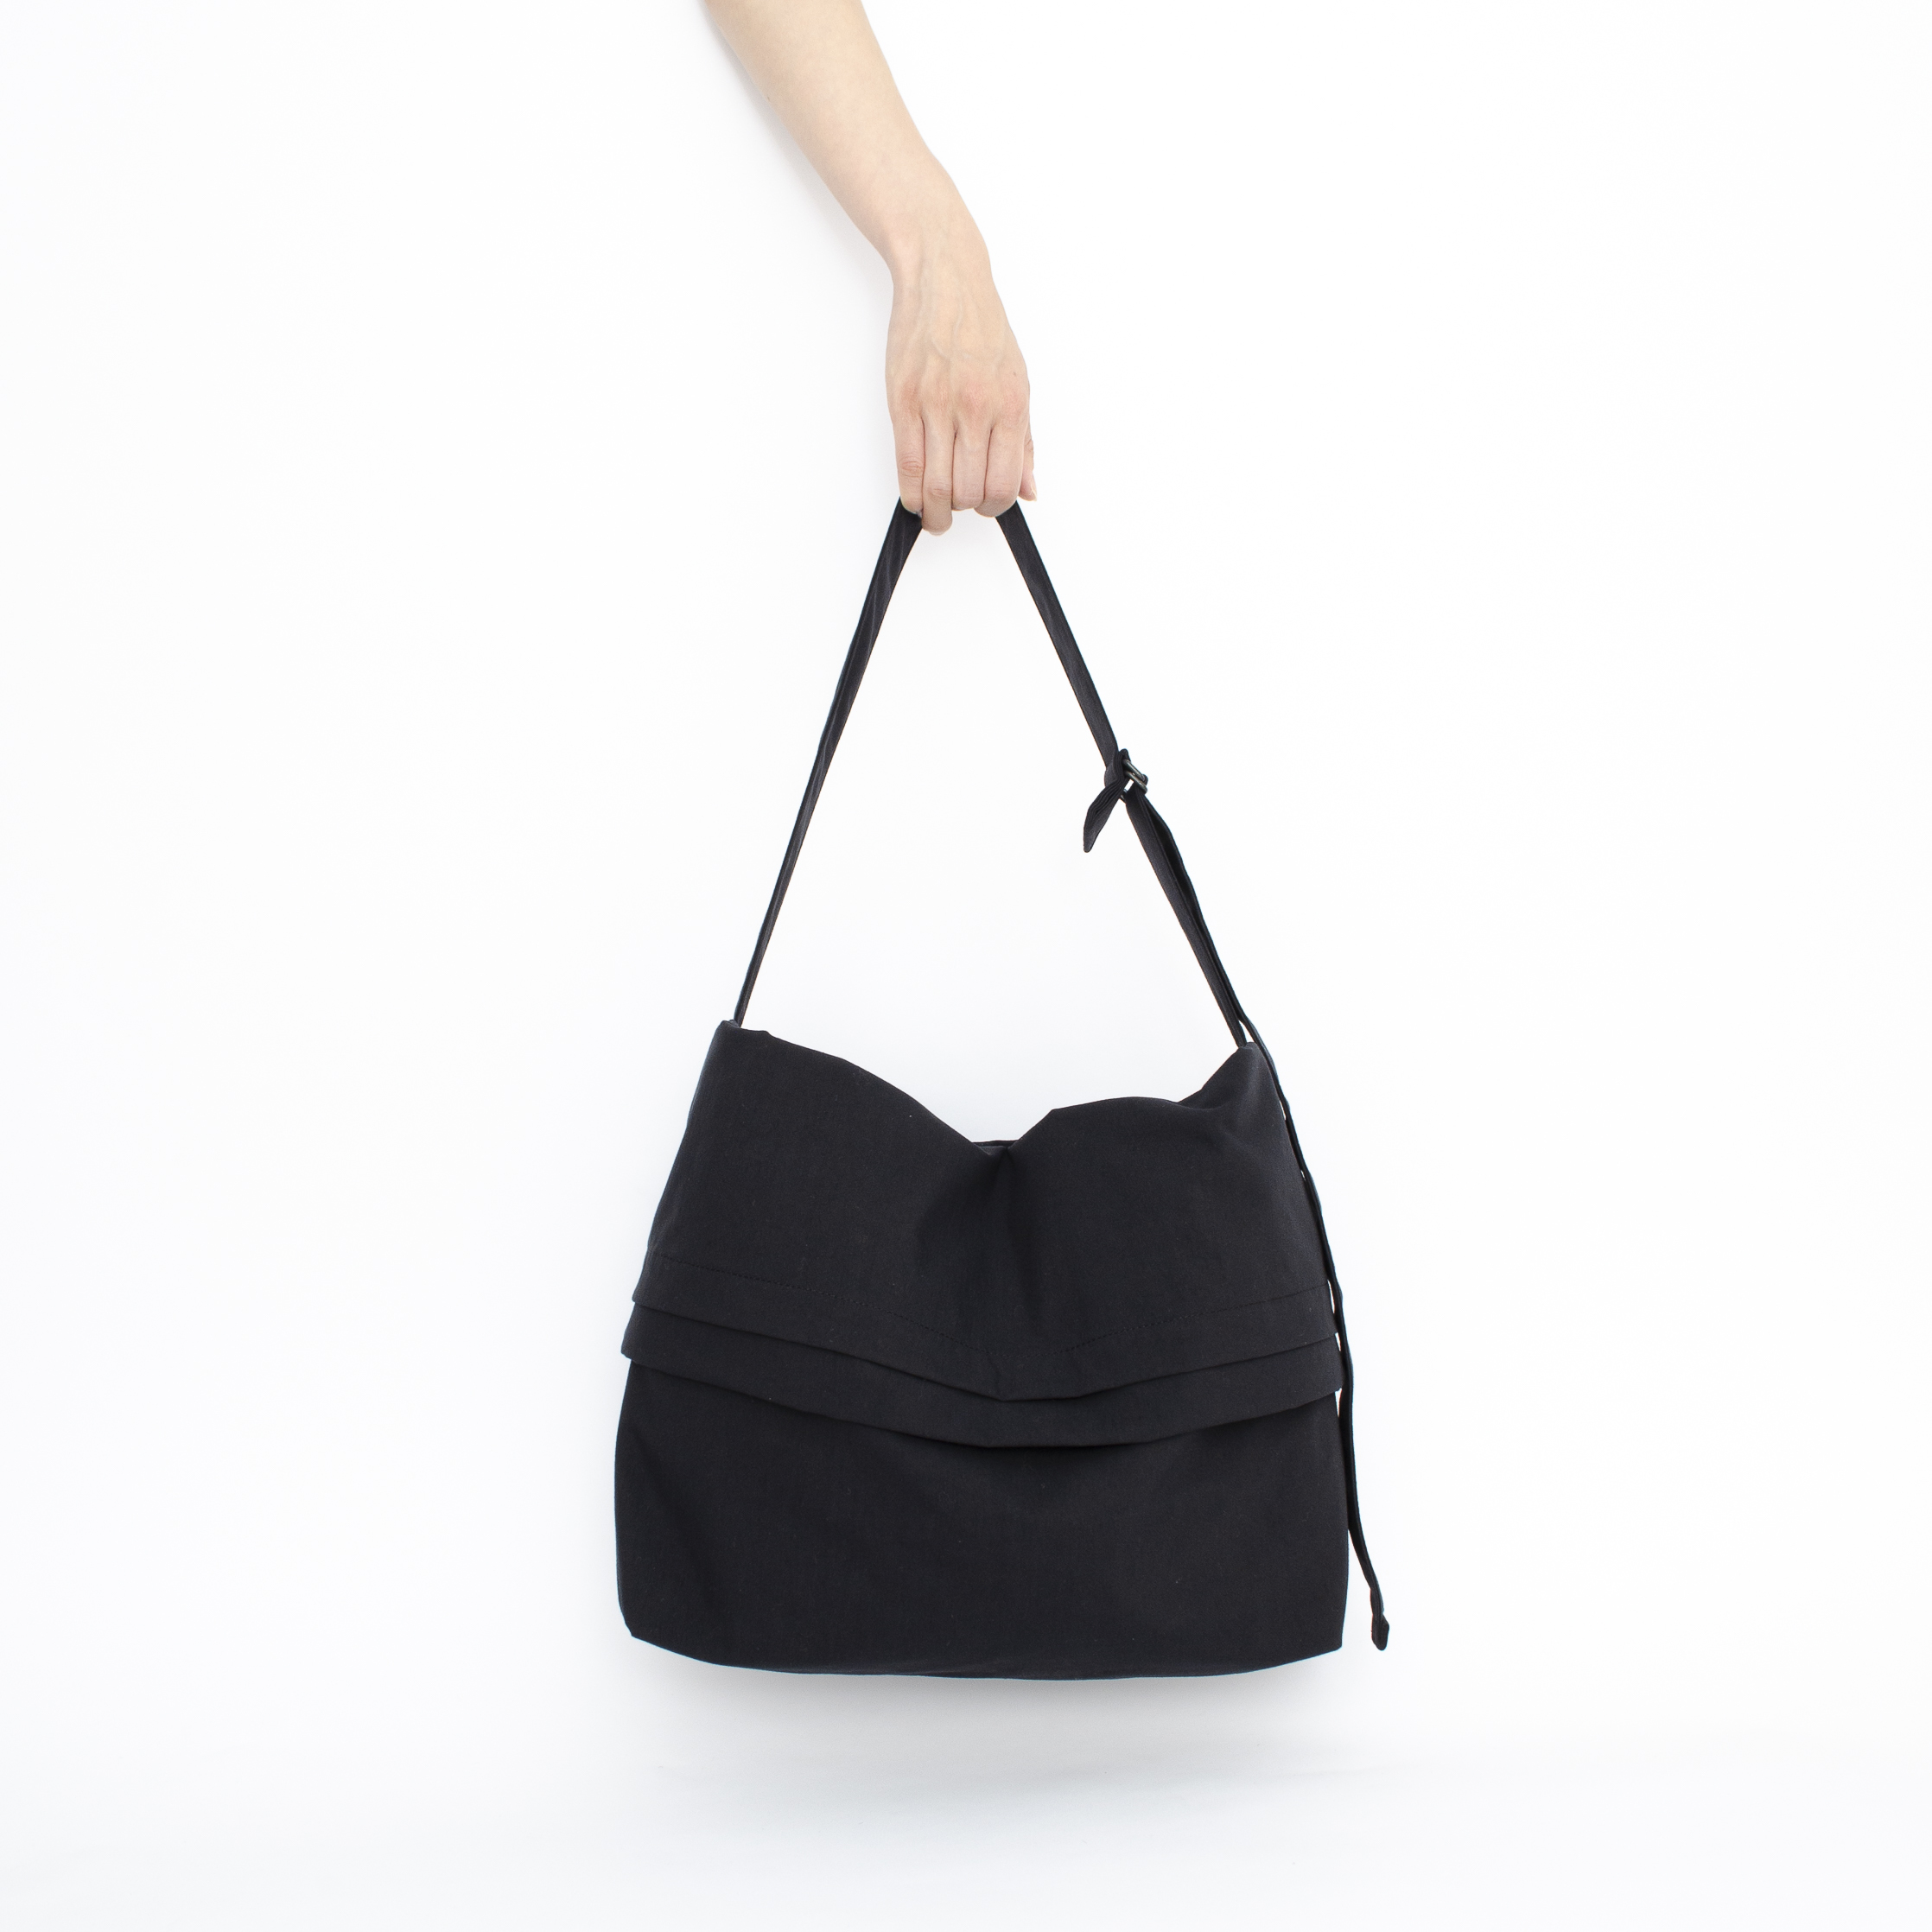 KaILI T/S TRANSFORM BAG M